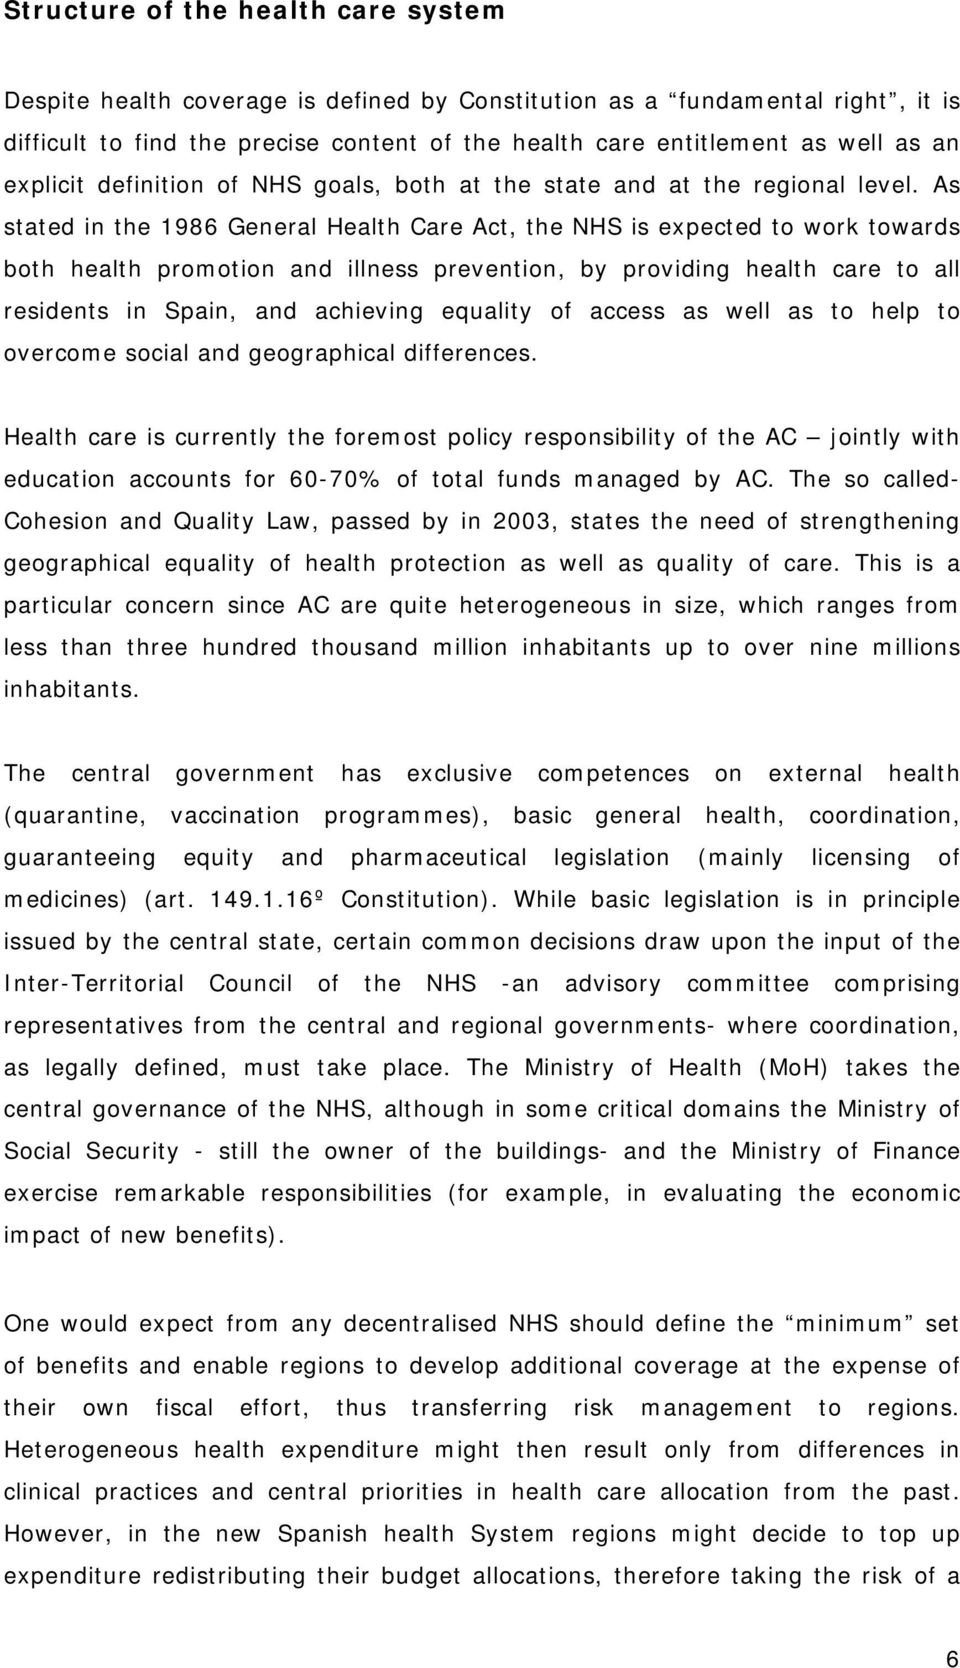 As stated in the 1986 General Health Care Act, the NHS is expected to work towards both health promotion and illness prevention, by providing health care to all residents in Spain, and achieving